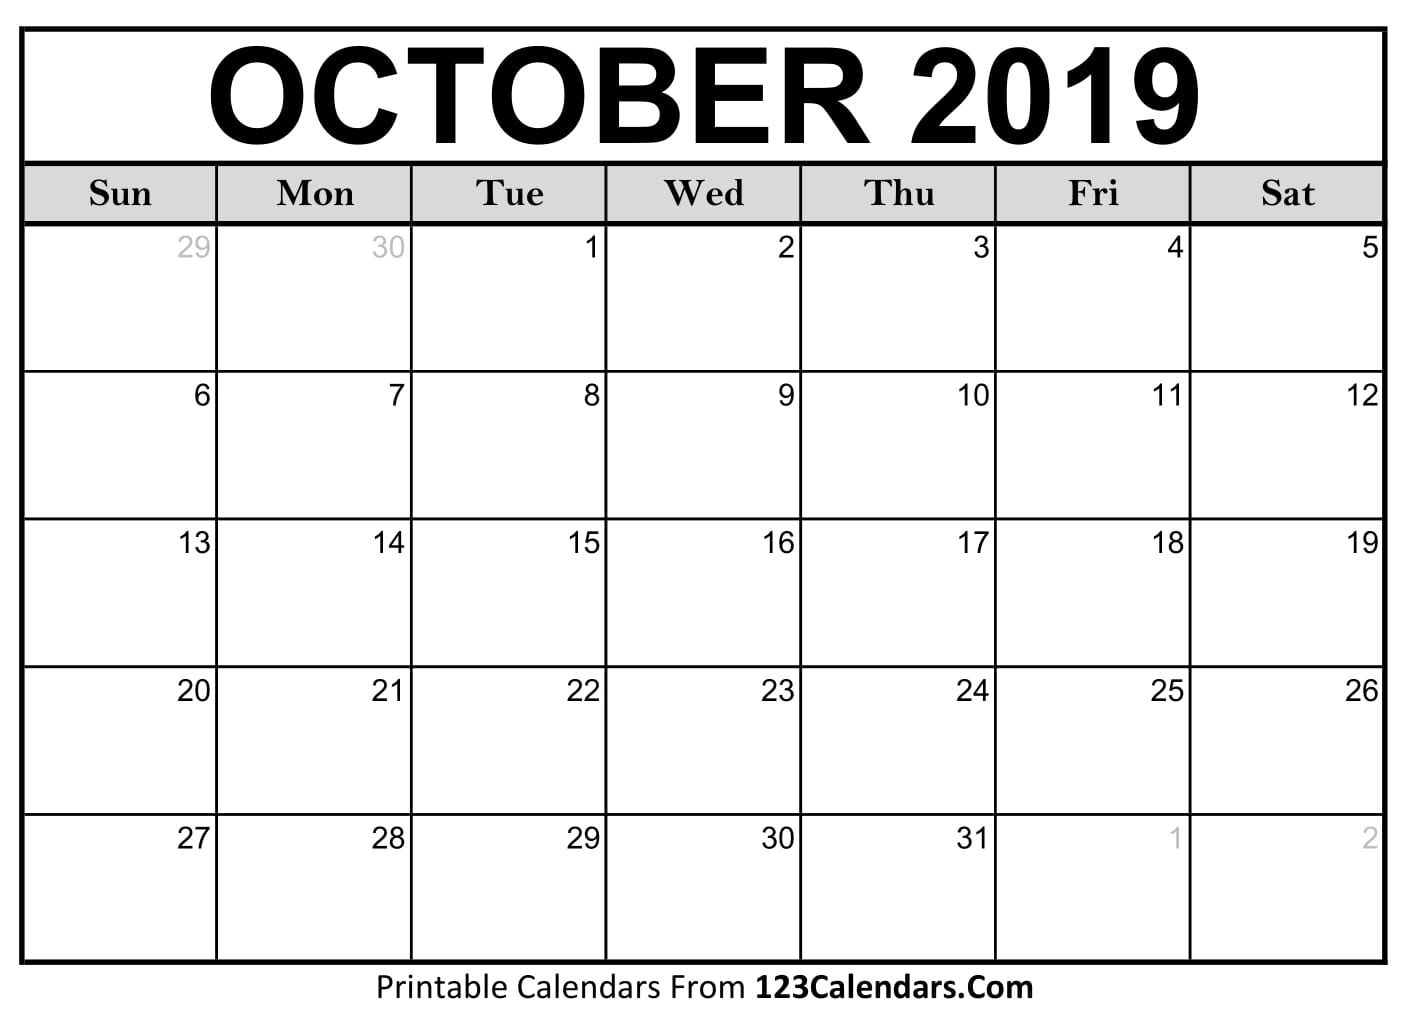 picture relating to Monthly Printable Calendars titled Oct 2019 Printable Calendar